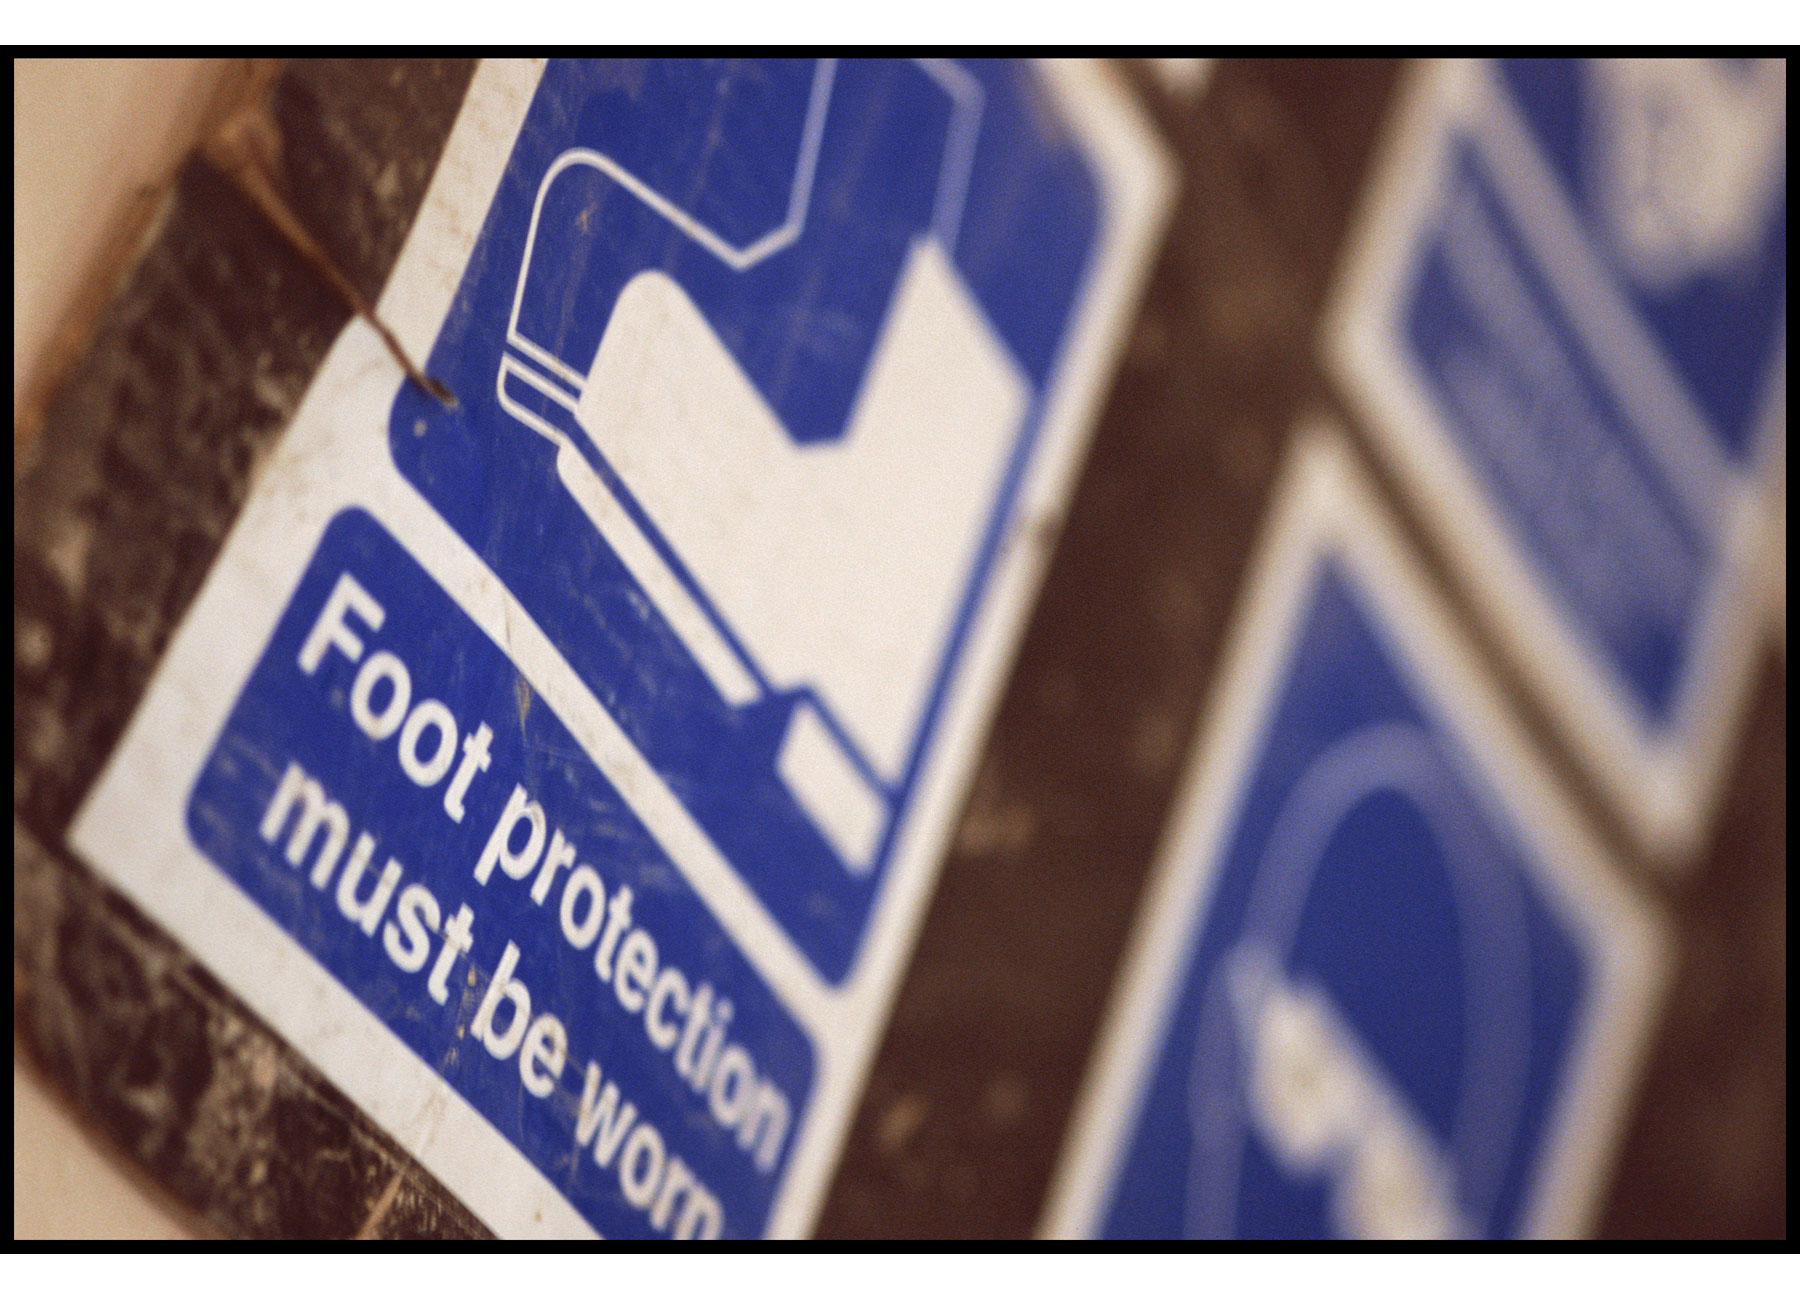 Construction site foot protection sign